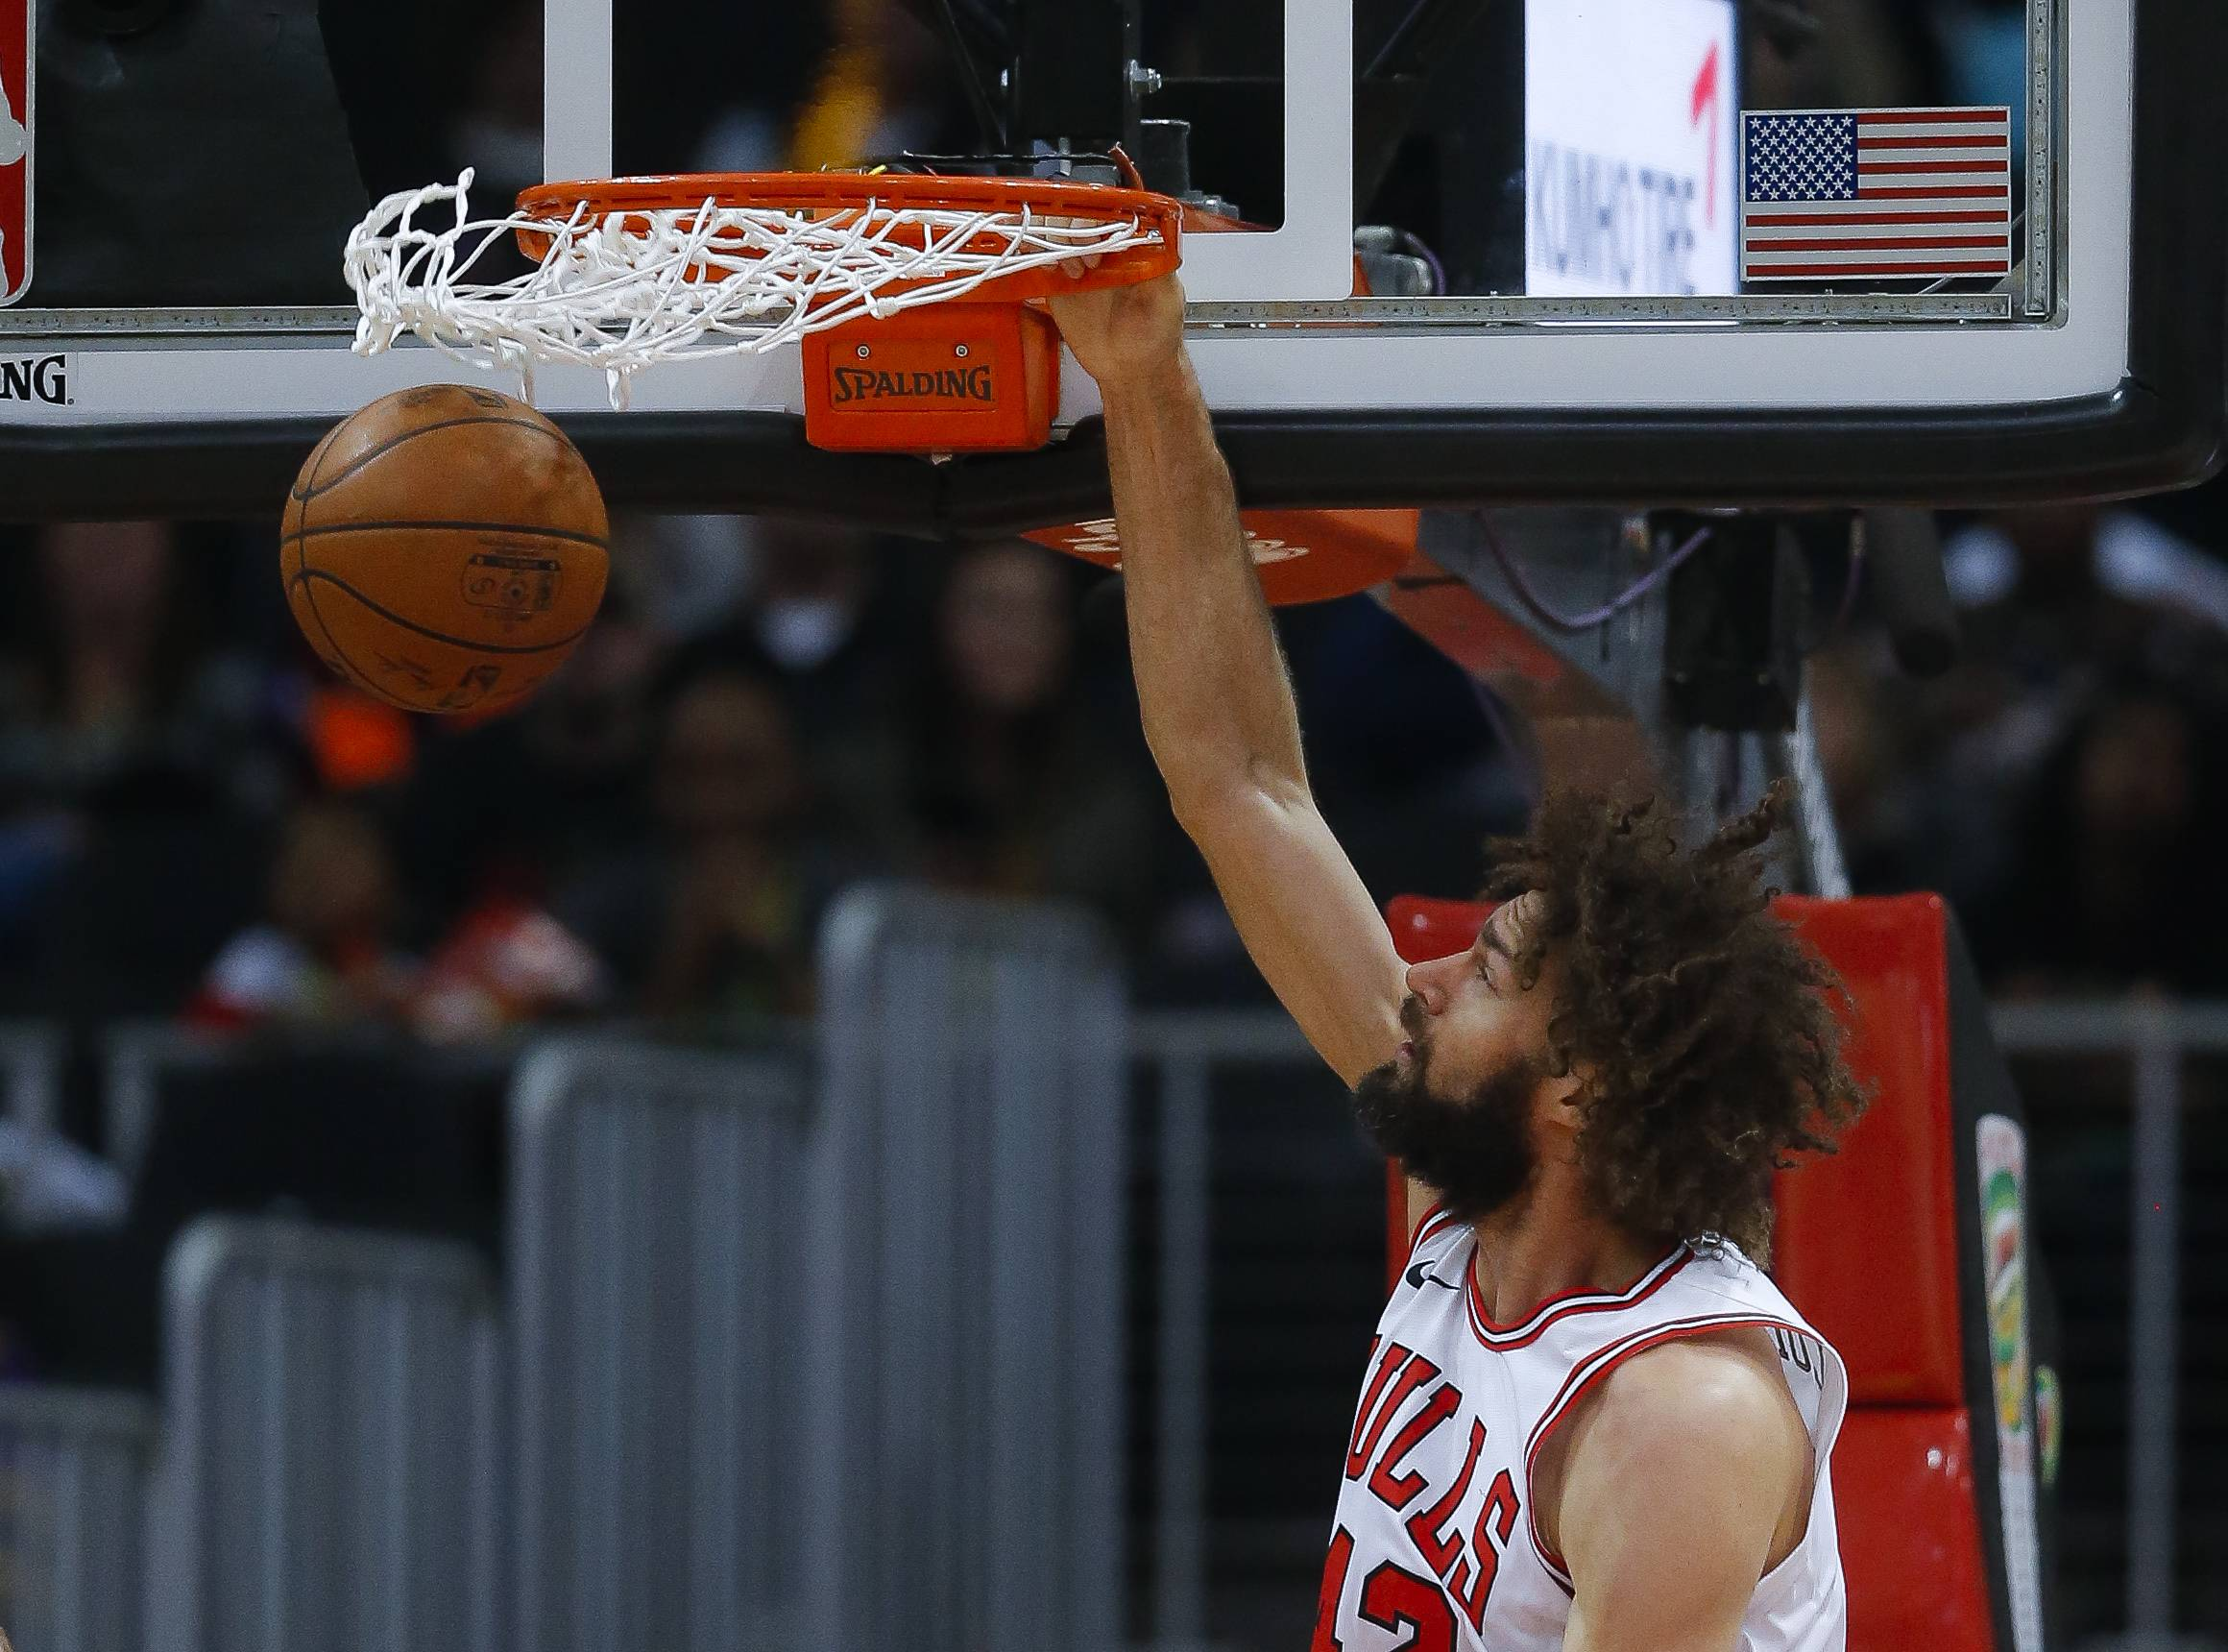 Hoiberg sees Lopez as part of Chicago Bulls' future